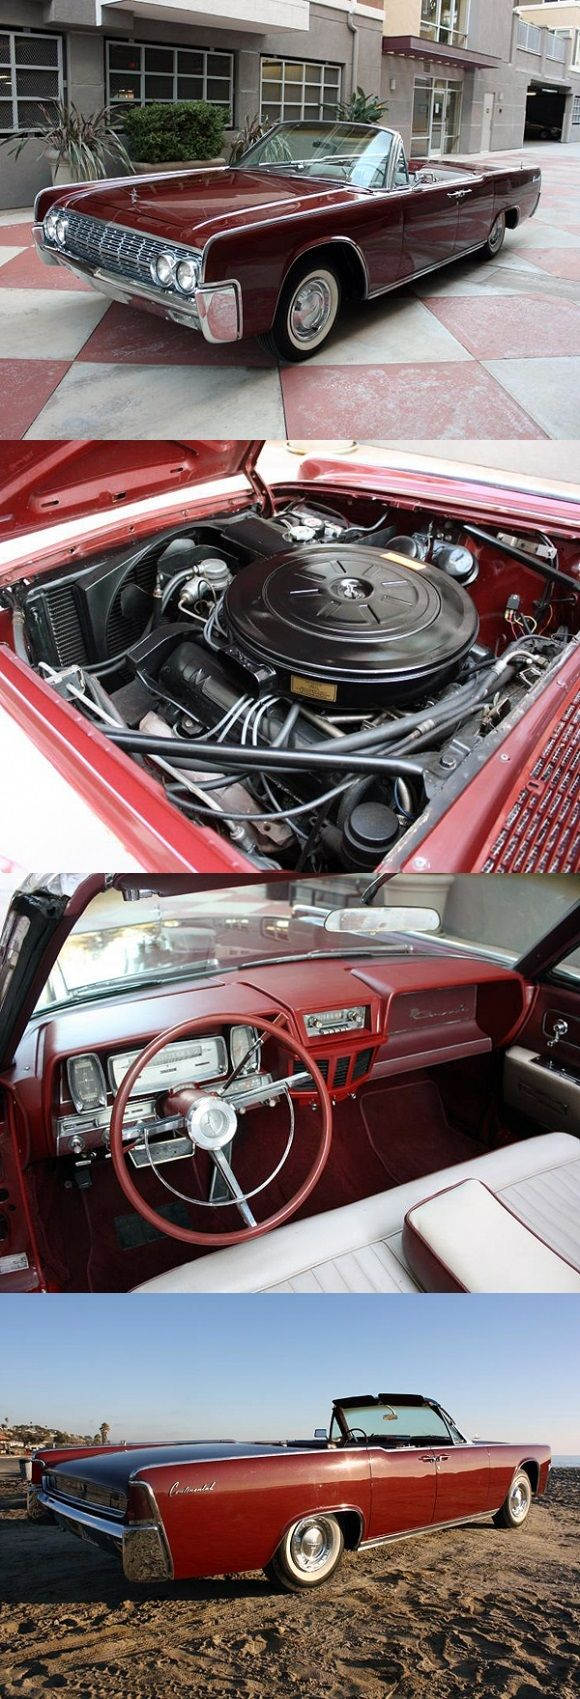 1962 Lincoln Continental Convertible Maintenance of old vehicles: the material for new cogs/casters/gears/pads could be cast polyamide which I (Cast polyamide) can produce